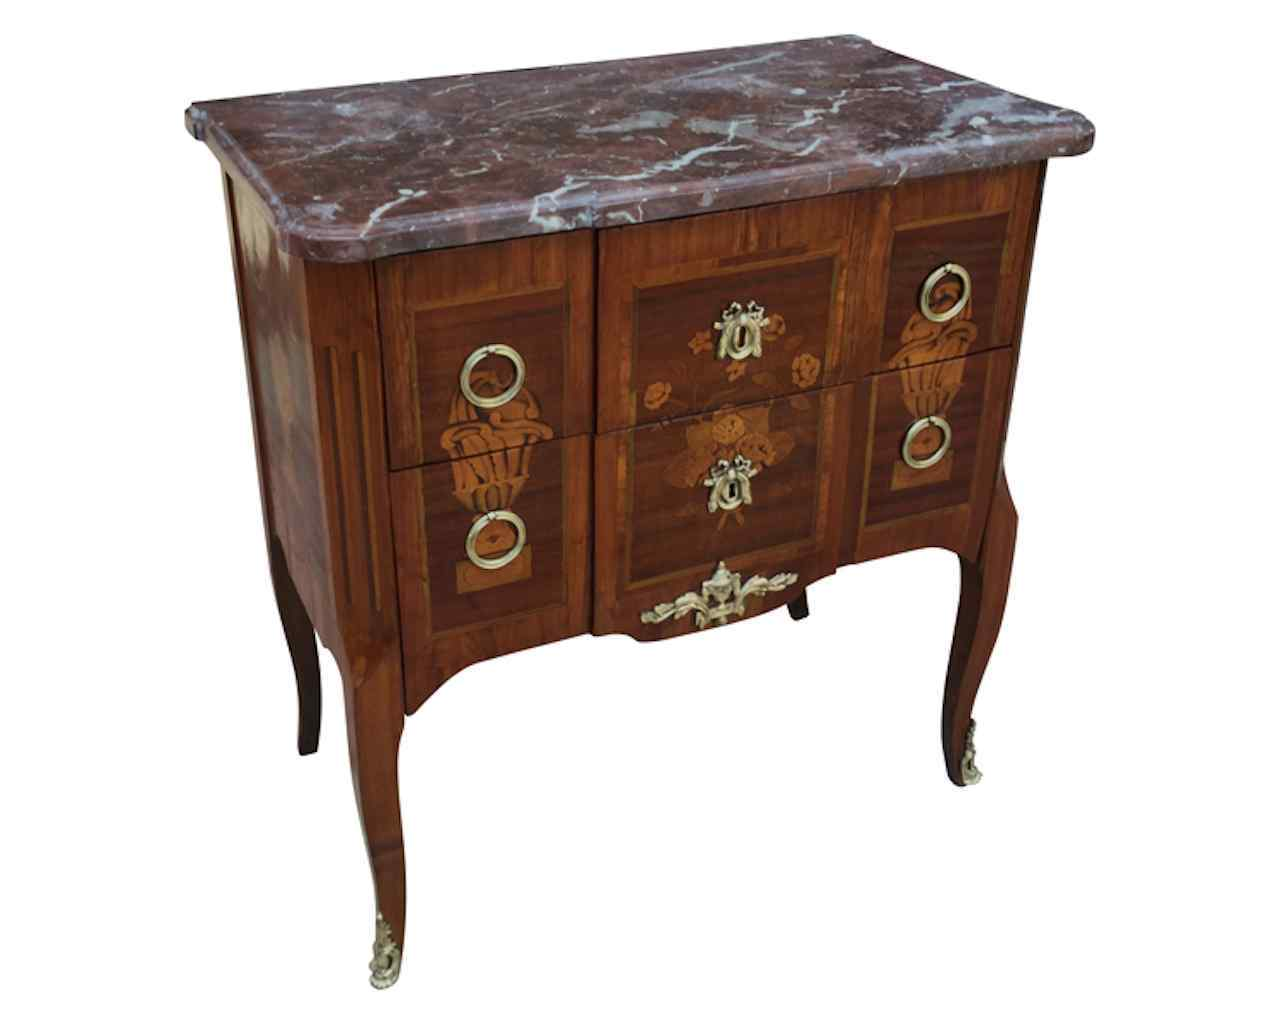 Commode 18th century in marquetry